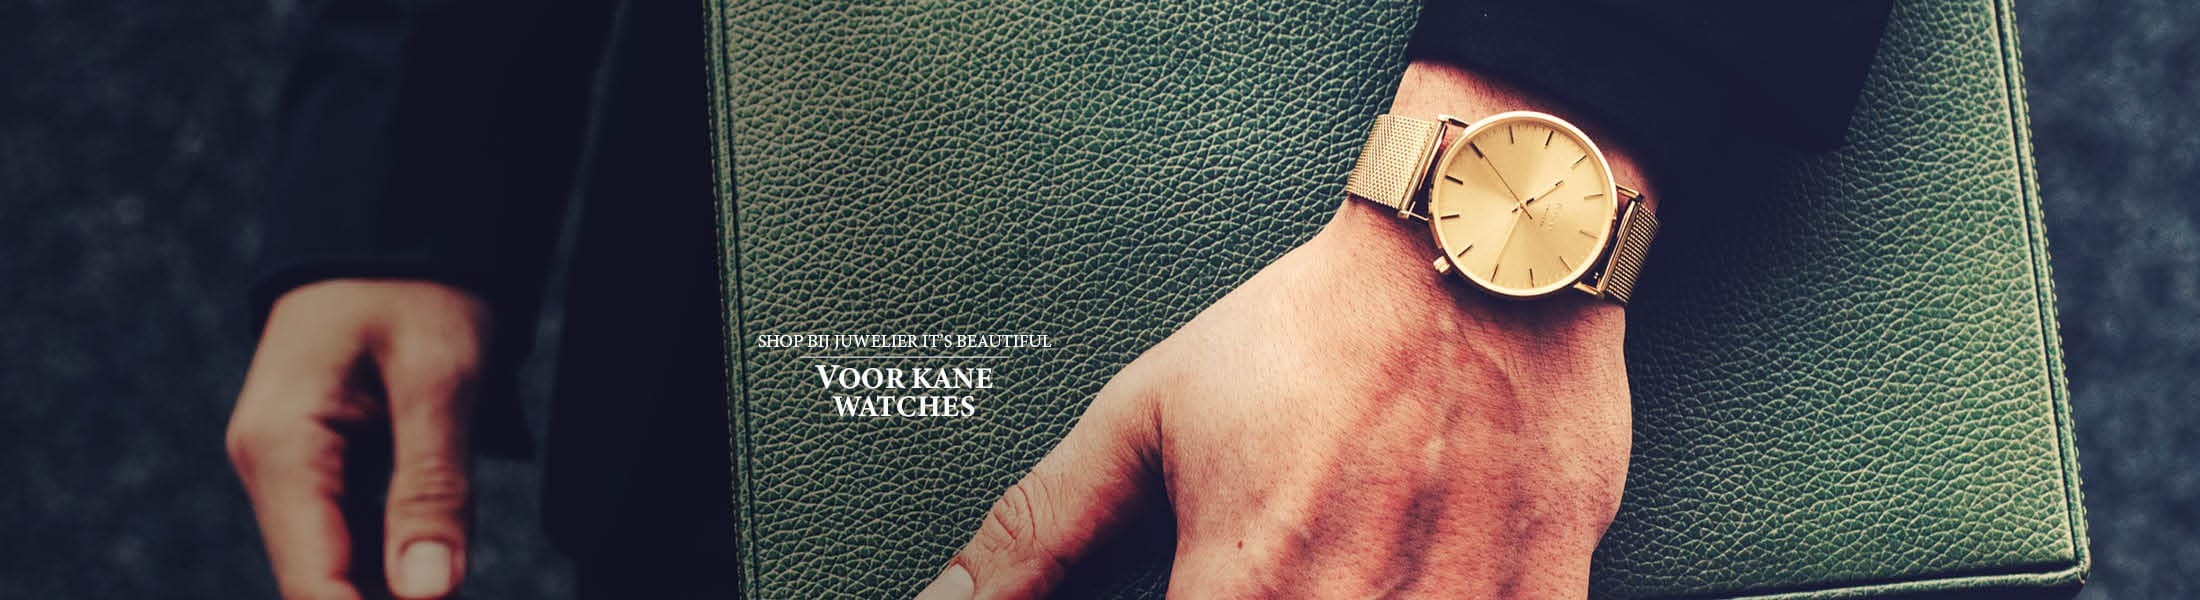 Shop bij juwelier It's Beautiful voor KANE WATCHES